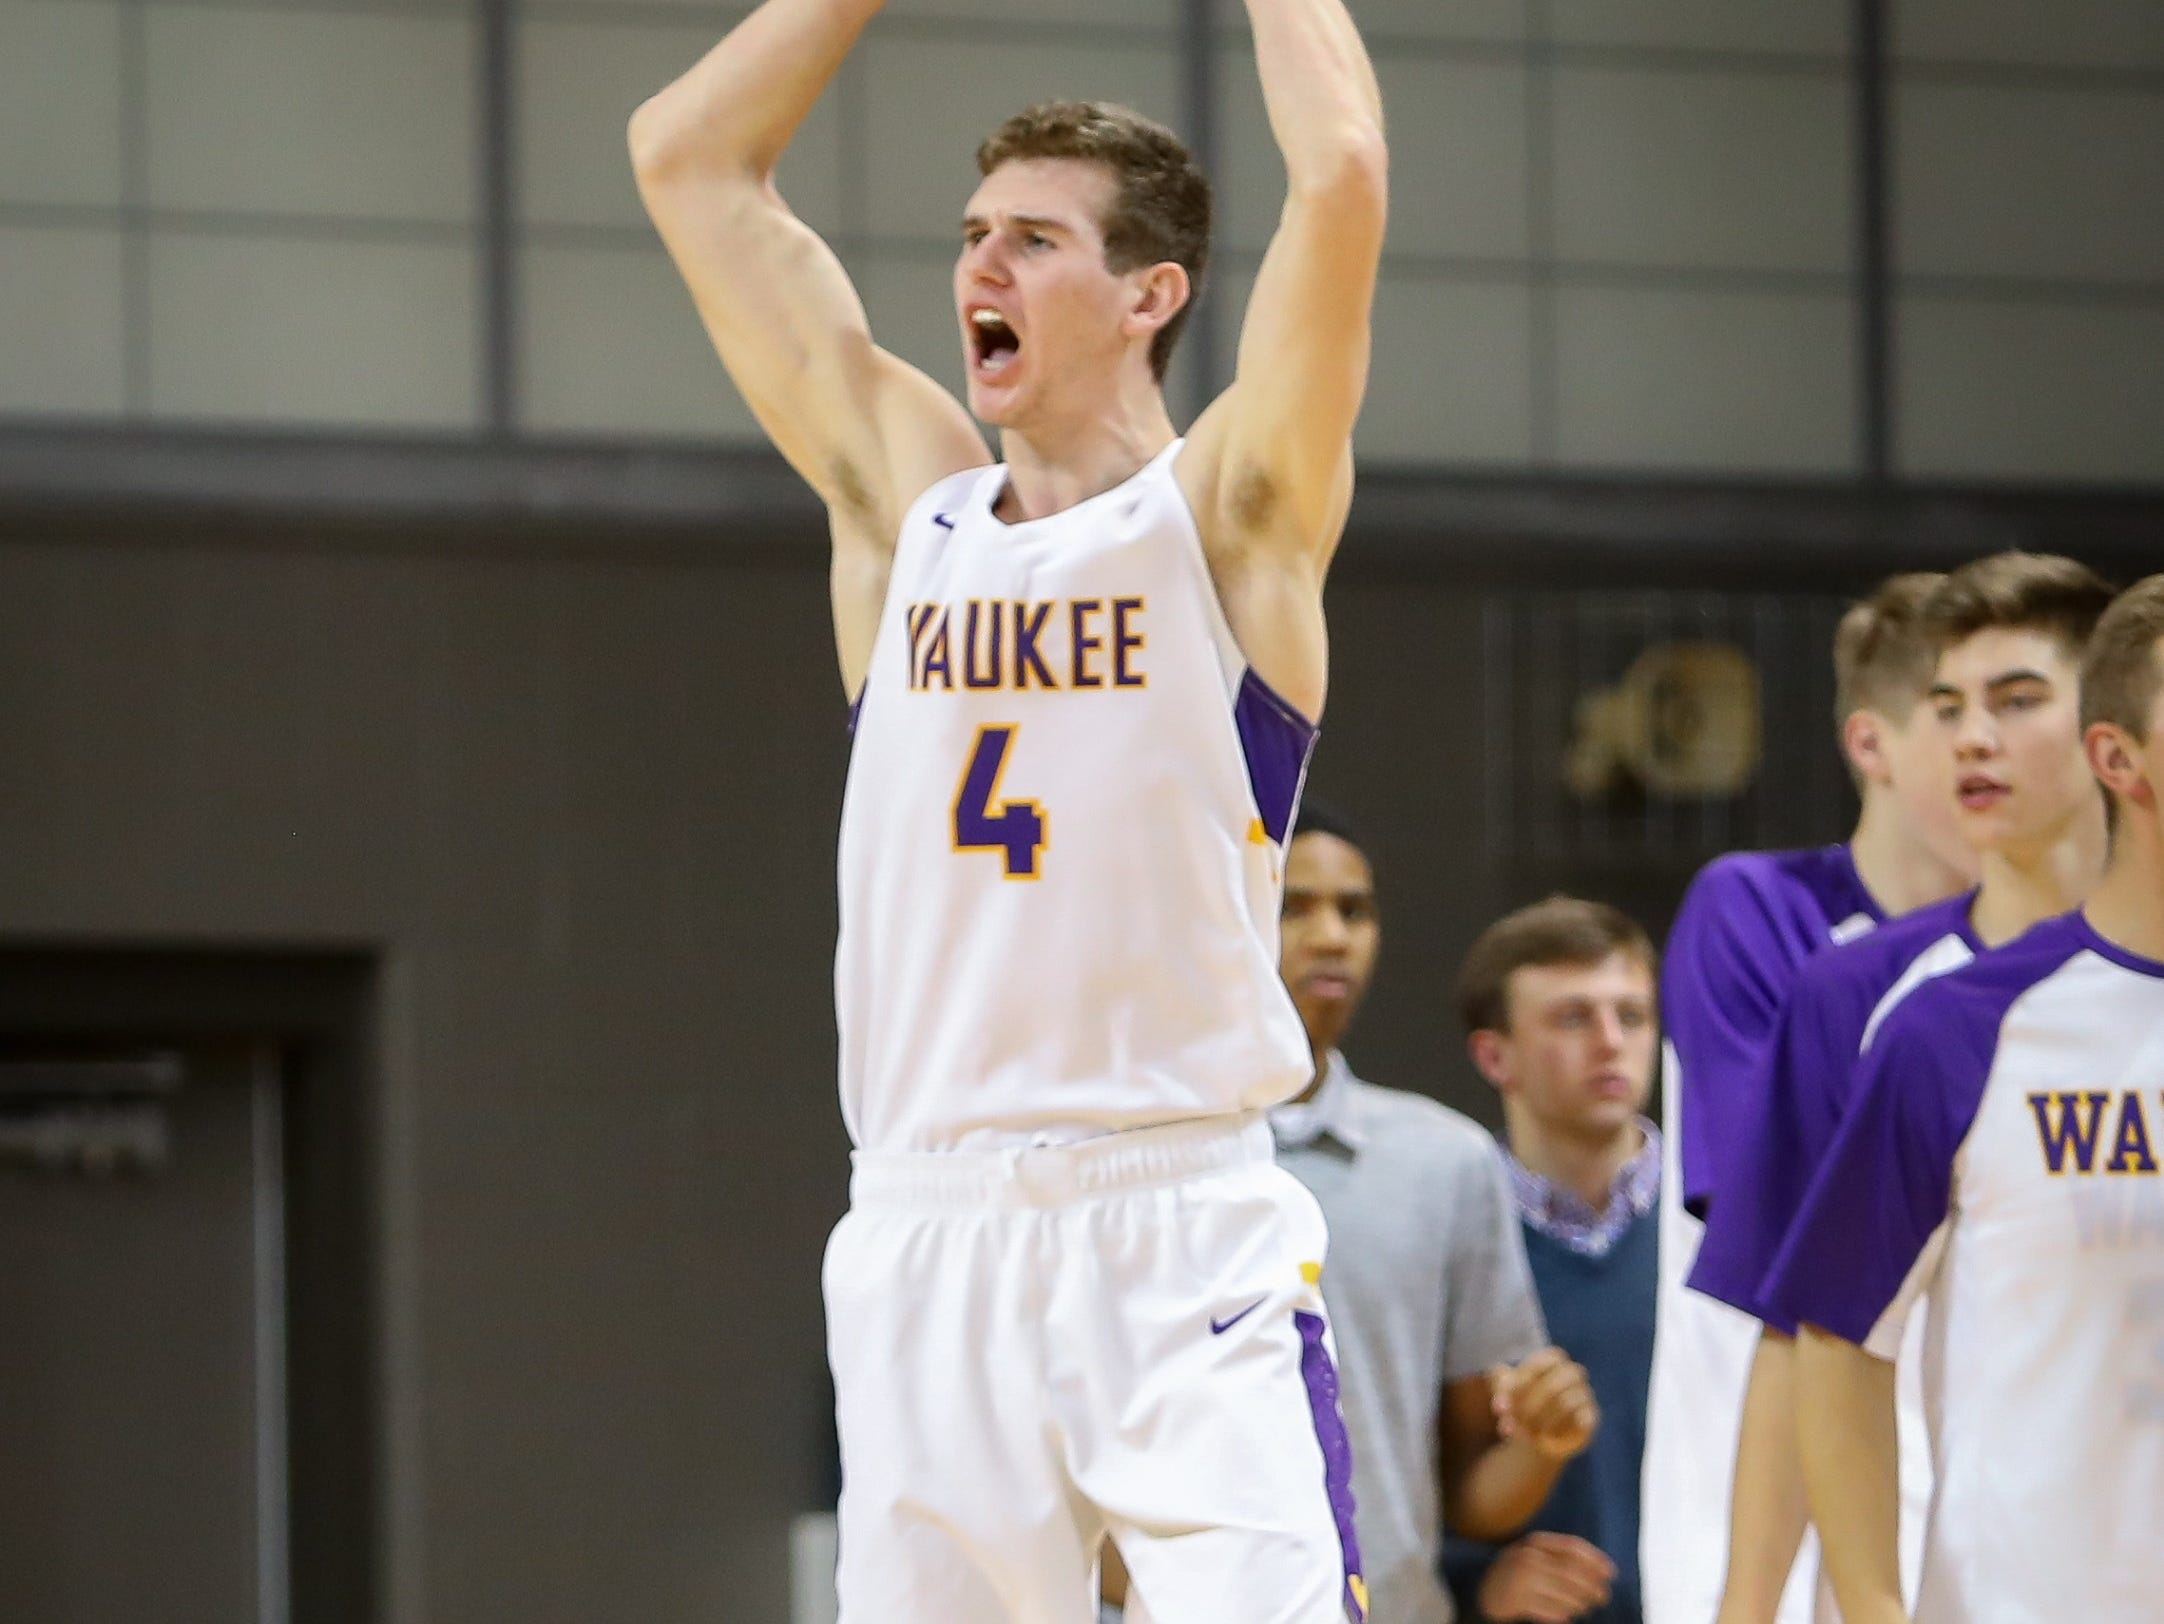 Waukee senior Dylan Jones celebrates by firing up the home crowd after the Warriors defeated the Valley Tigers, 49-48, at Waukee High School on Dec. 14, 2018 in Waukee, Iowa.